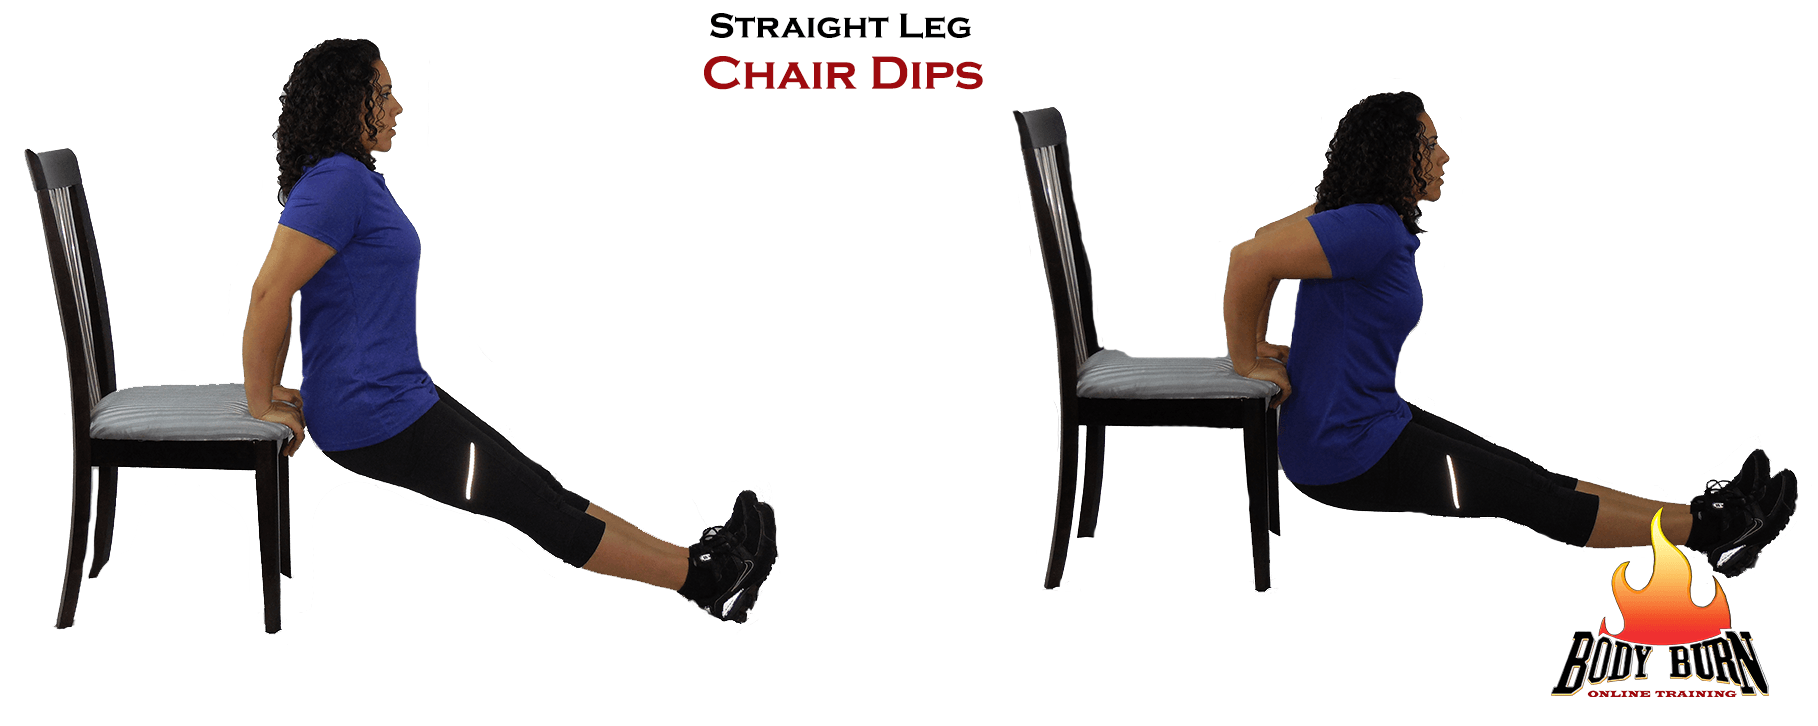 Exercise of the Week - Straight Leg Chair Dip - Fit Tip Daily